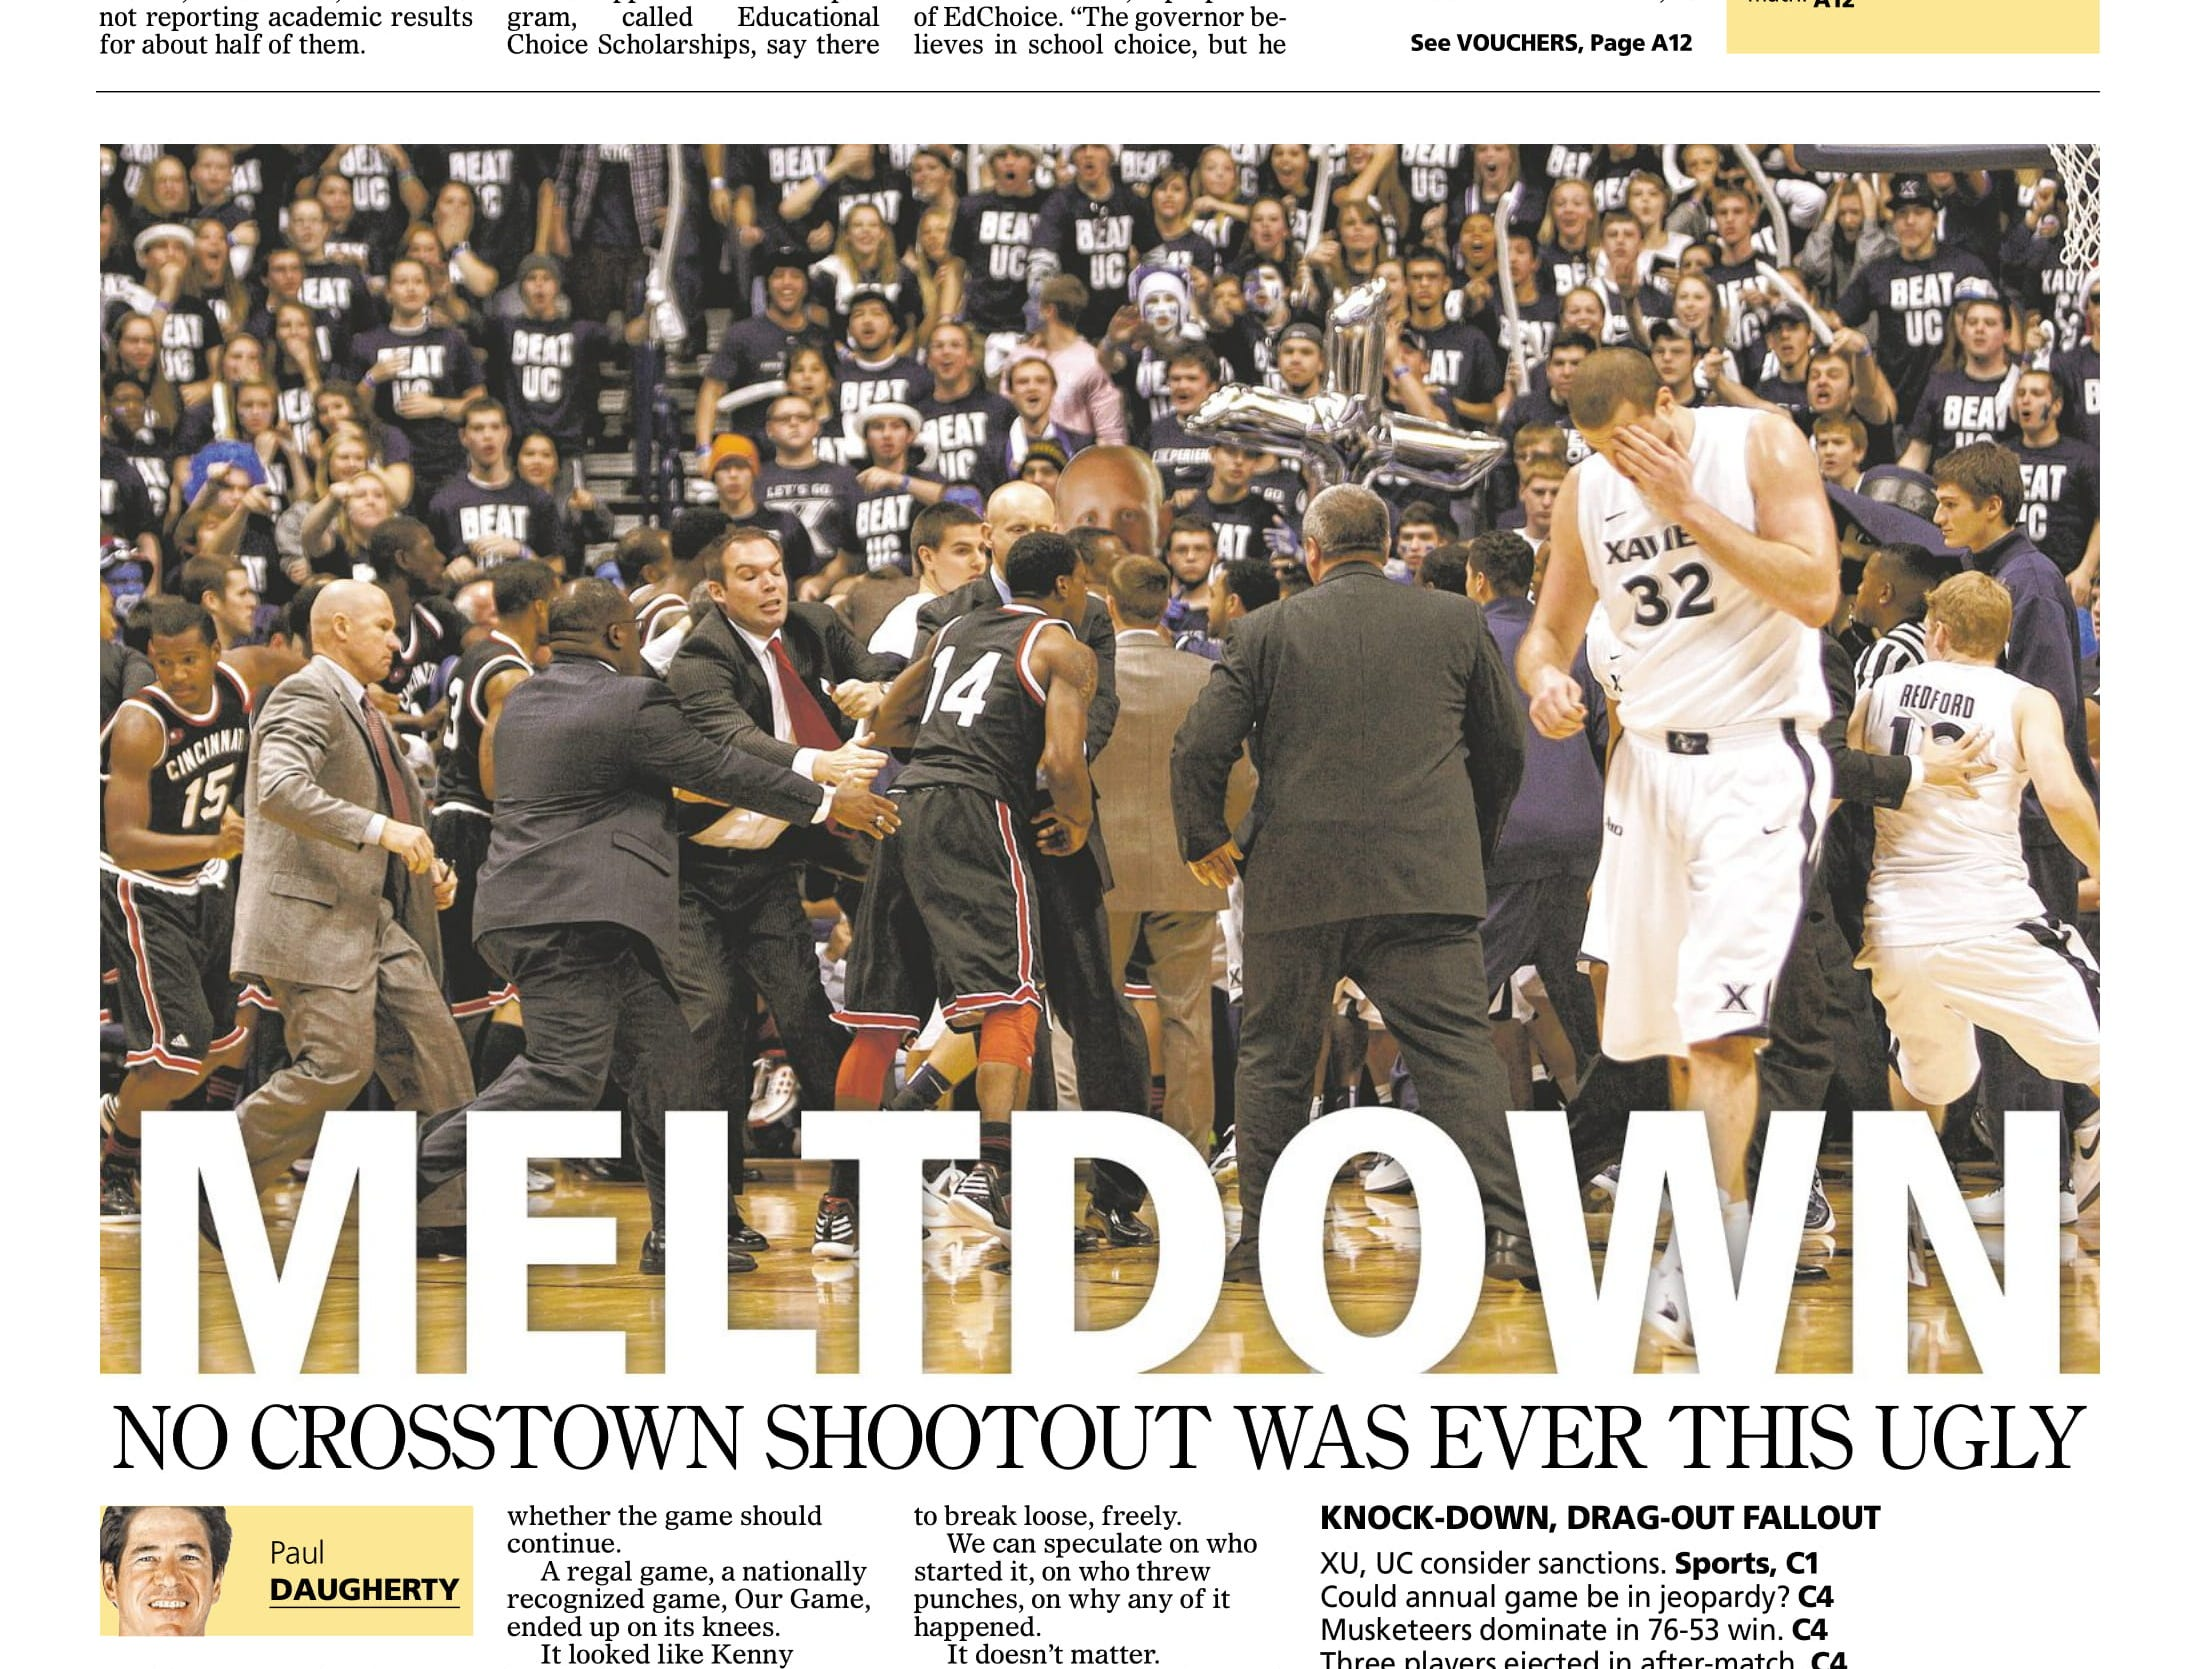 'MELTDOWN': The 2011-12 season's Crosstown Shootout was memorable for all the wrong reasons. The bench-clearing brawl made national headlines. Xavier won 76–53, but the score was secondary that day.